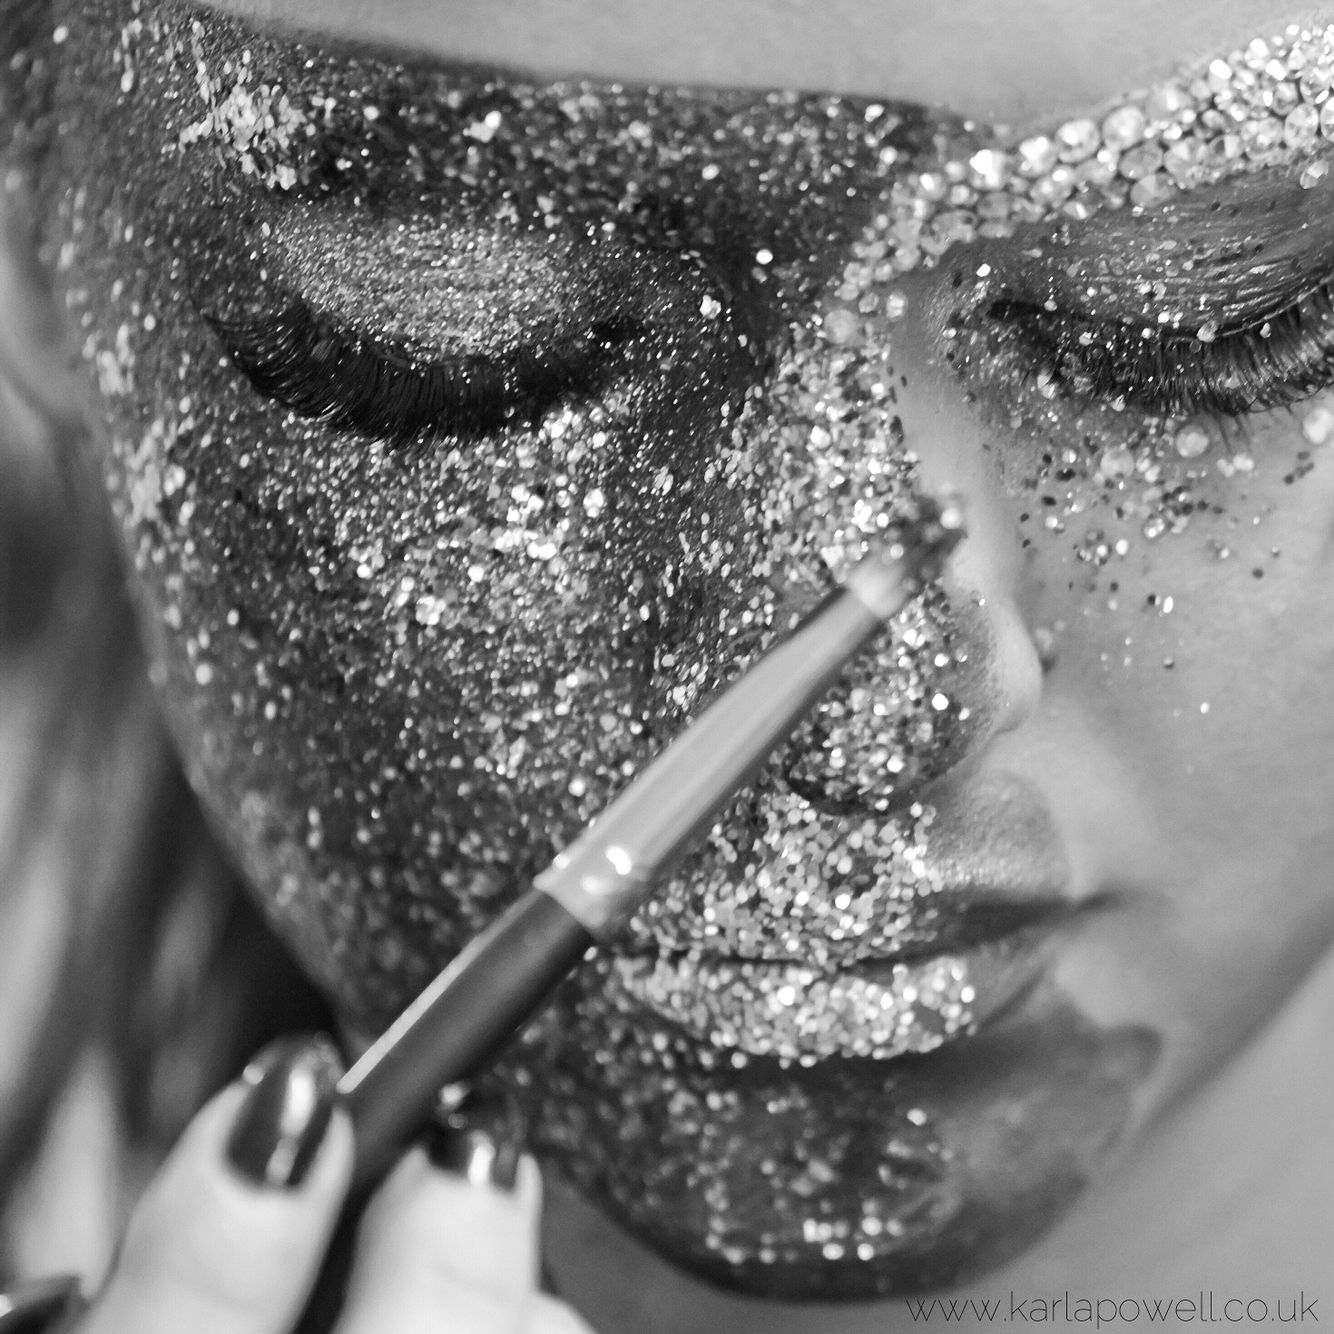 Glitter! Behind the scenes with Karla powell for Karla